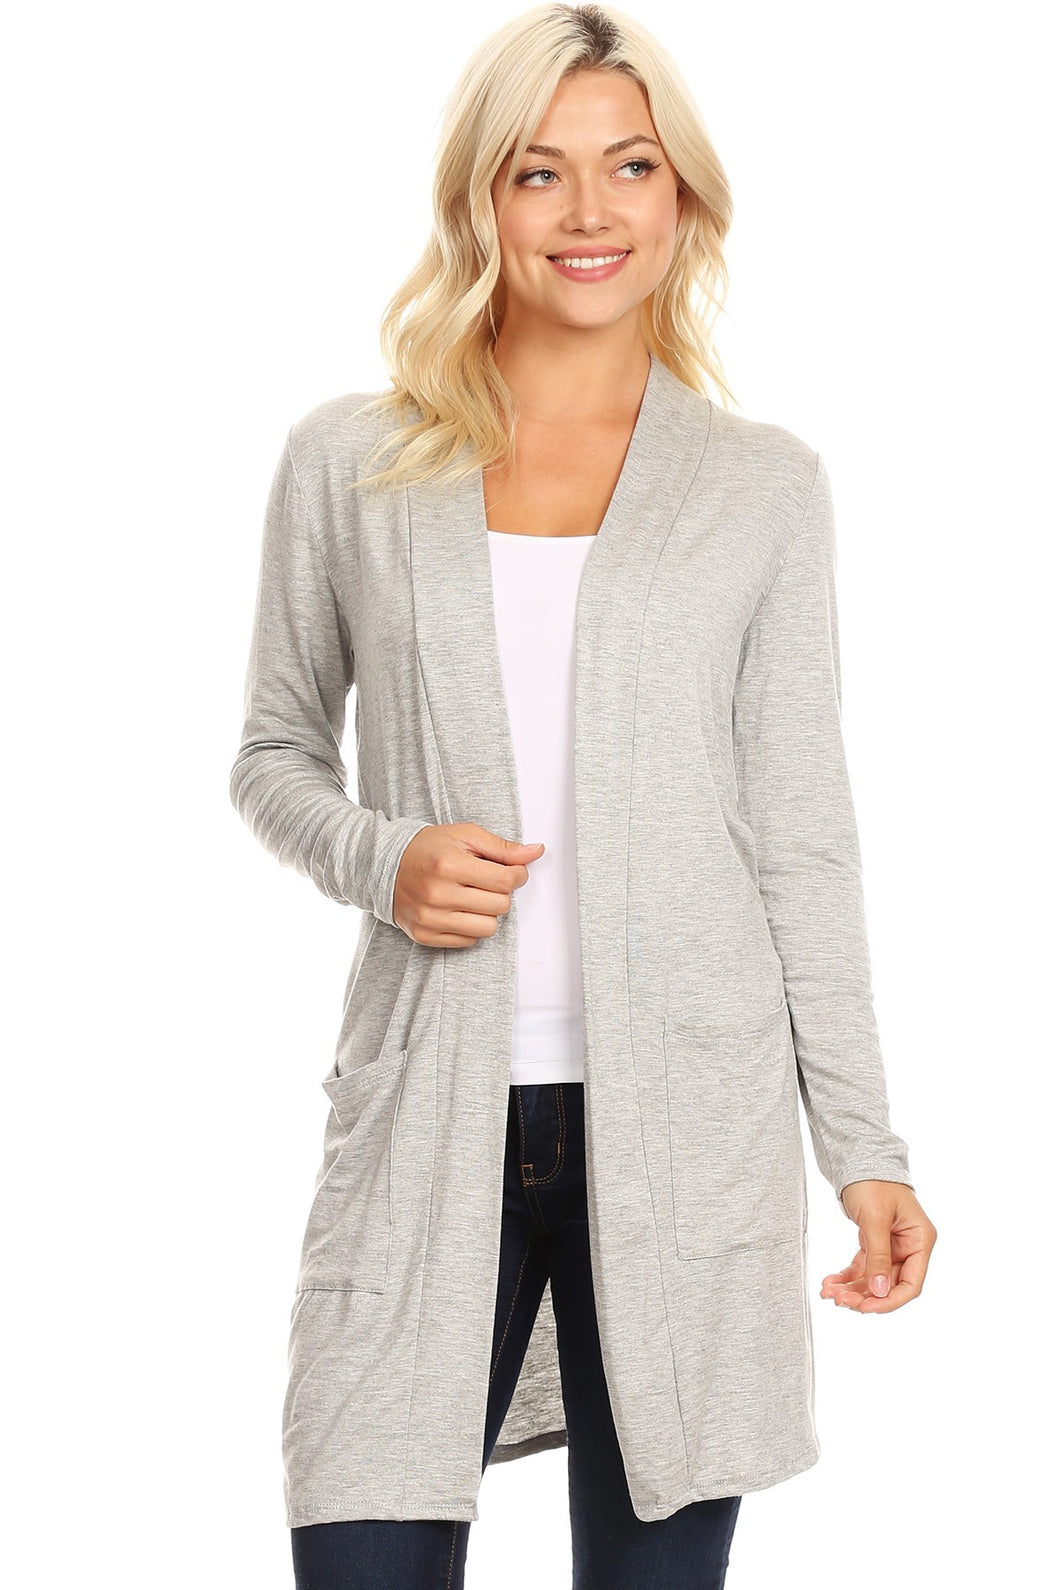 By The Bonfire Heather Gray Cardigan